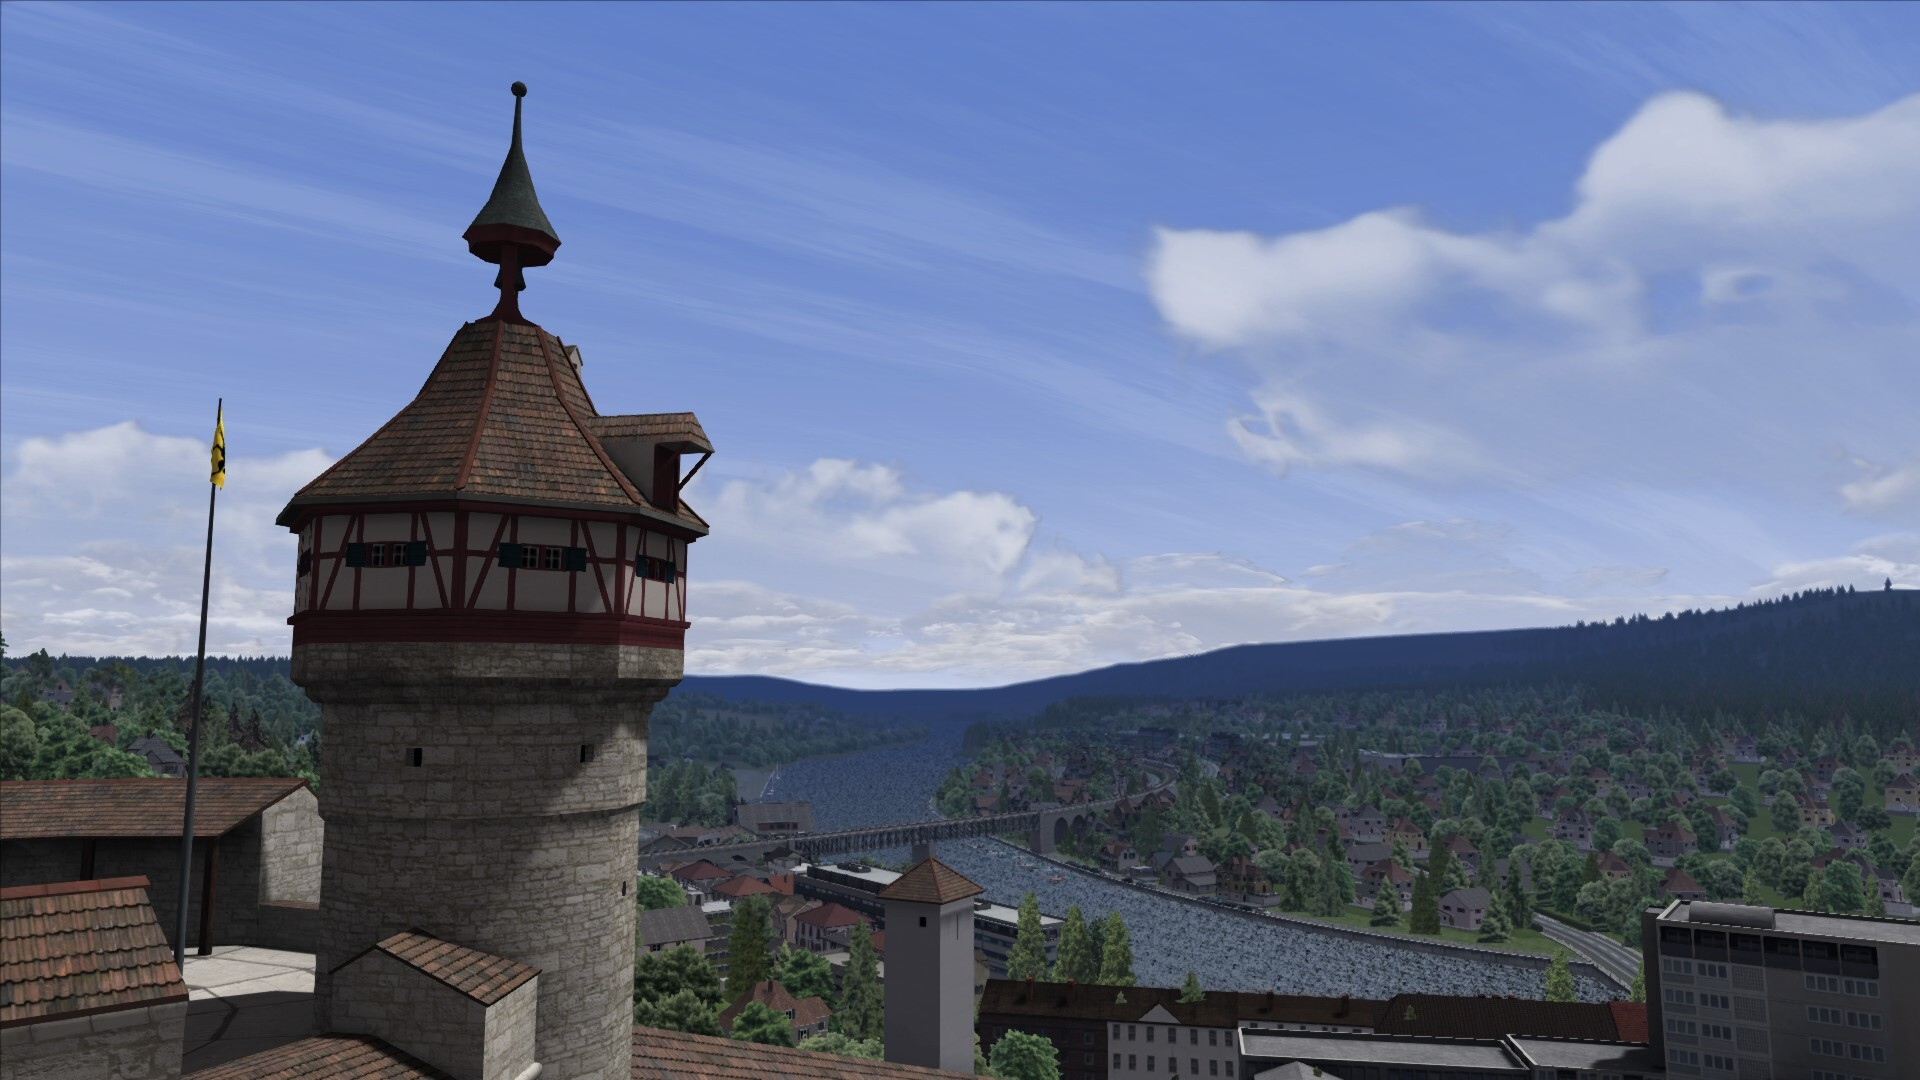 Click image for larger version  Name: Munot Fortress in Schaffhausen.jpg Views: 324 Size: 304.1 KB ID: 1076